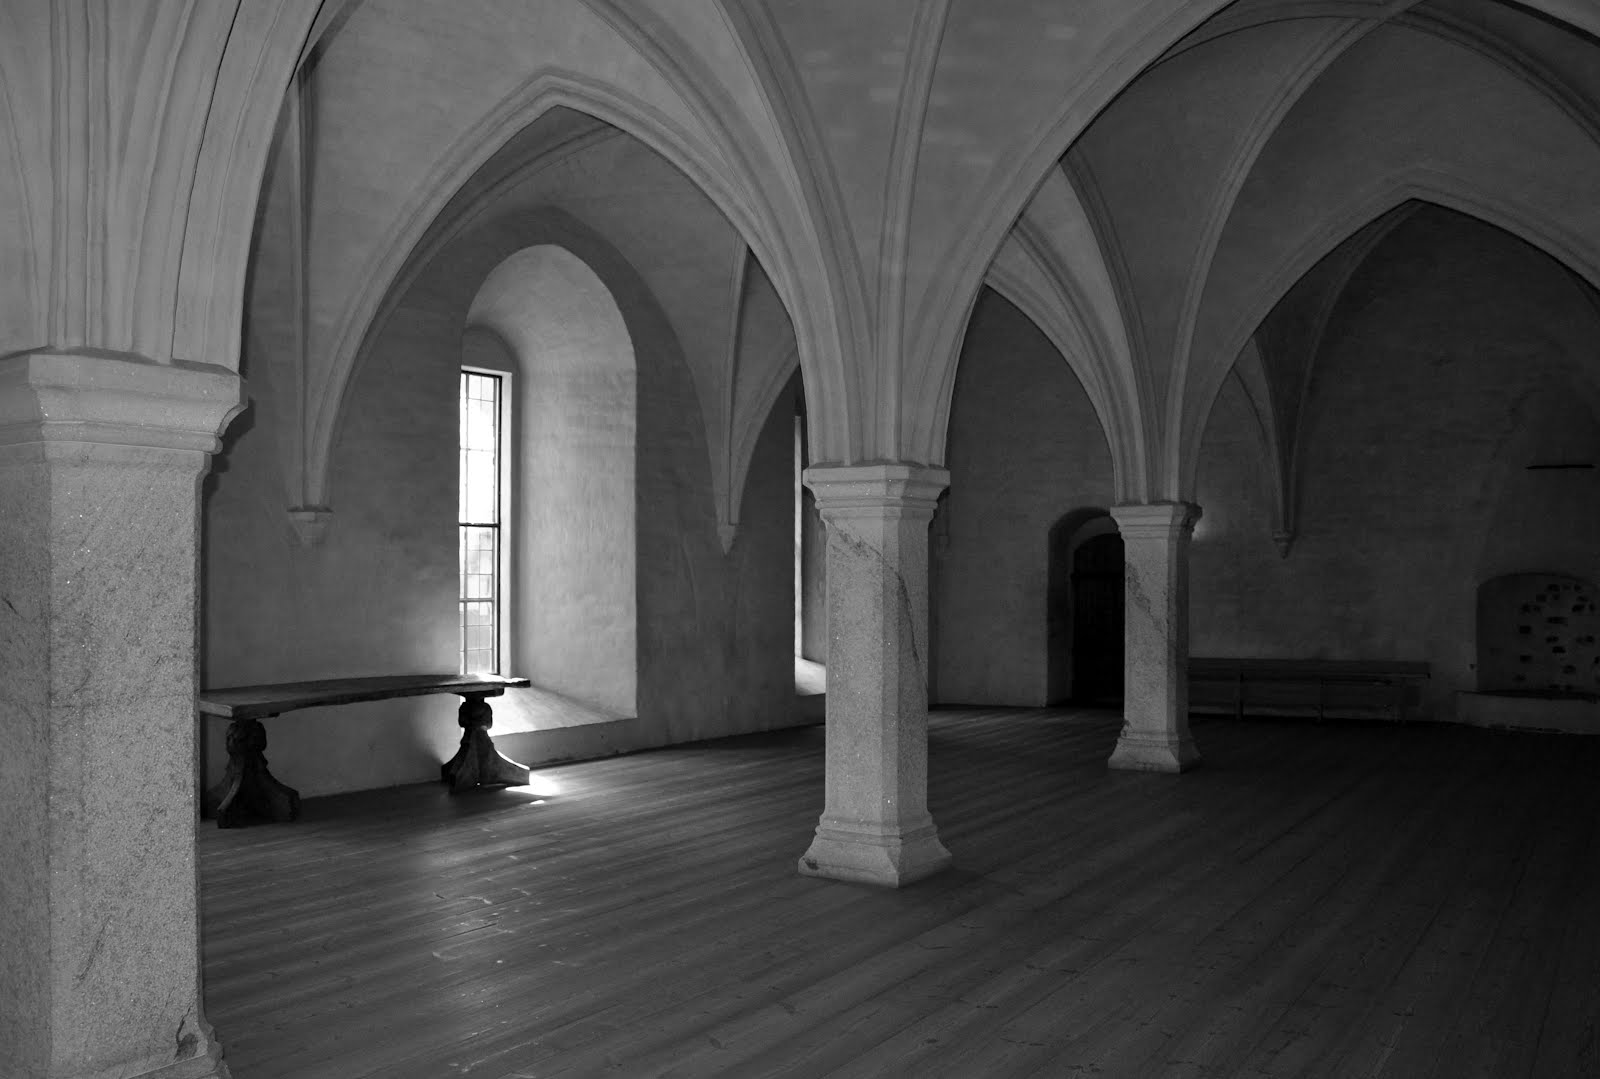 Empty Arched Space